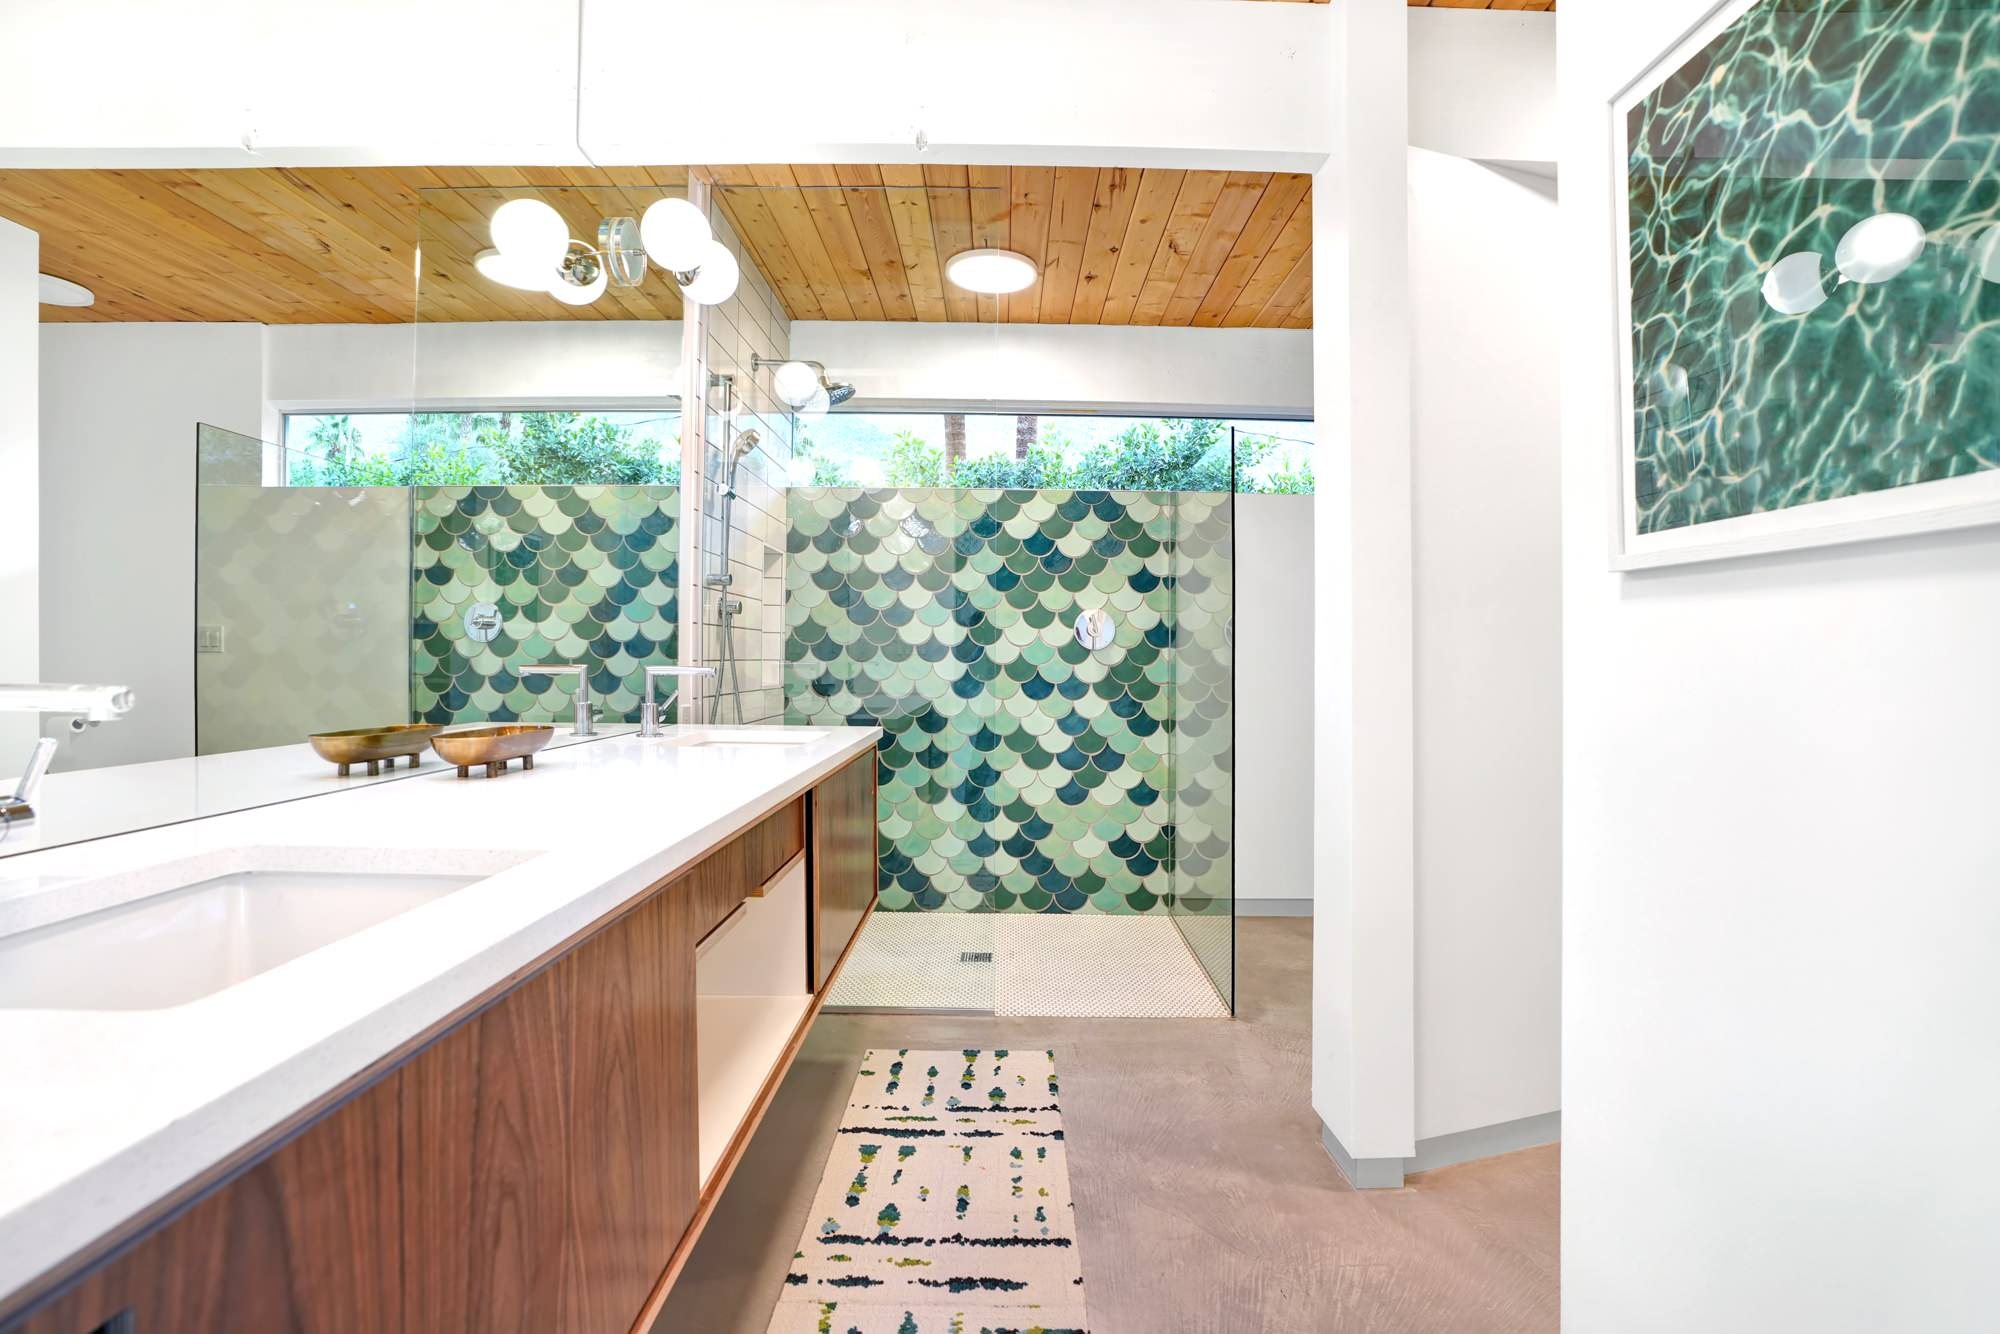 20 Impressive Mid-Century Modern Bathroom Designs You Must See